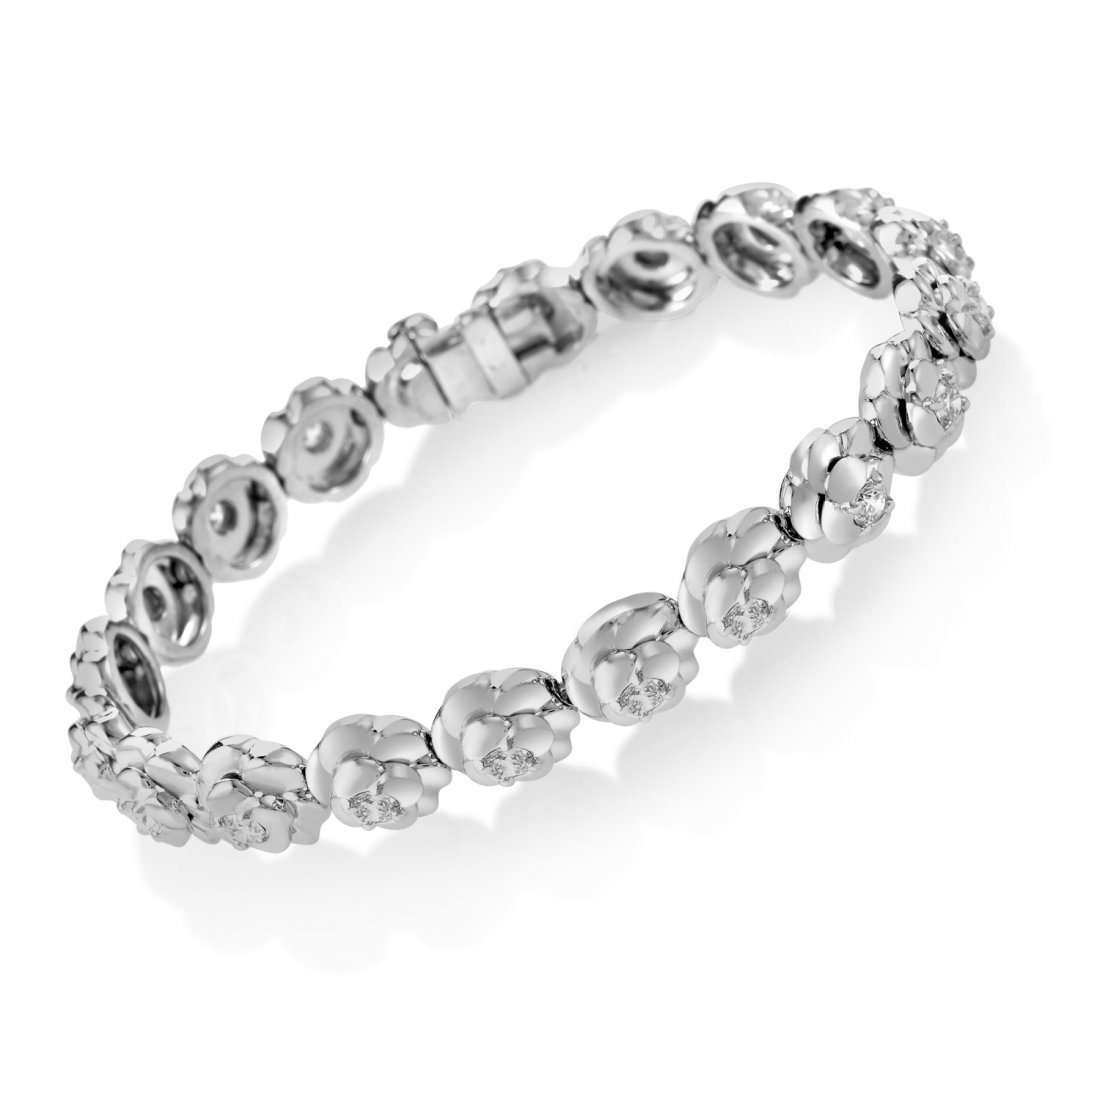 Chanel Camélia 18K White Gold Diamond Bracelet AK1B764